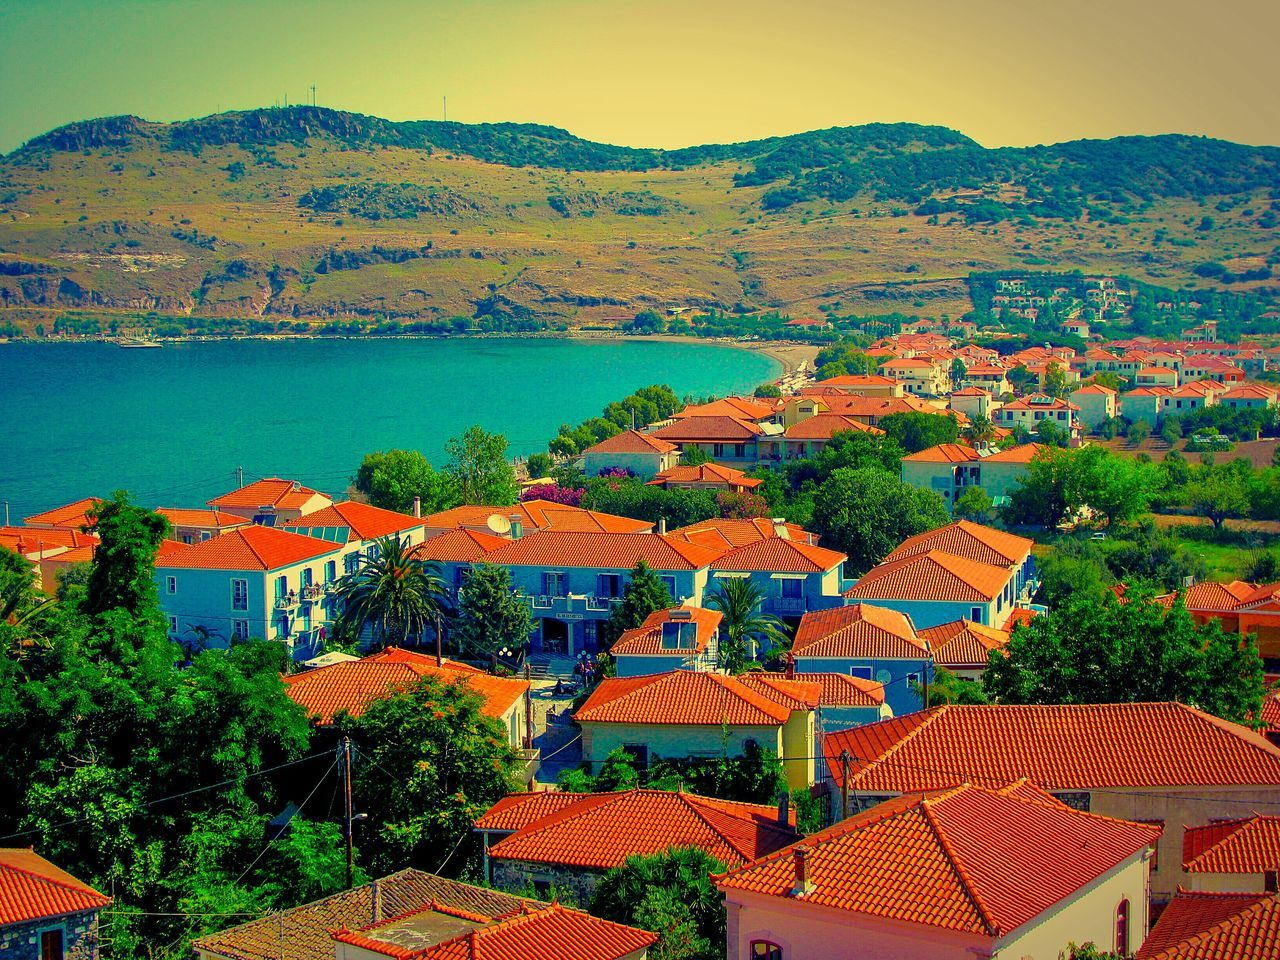 Village Village And Sea Villagescape View From Above View From The Top Village View Greek Village The Great Outdoors - 2016 EyeEm Awards The Architect - 2016 EyeEm Awards Petra Lesvos Island Greek Islands Seaside Village Seeing The Sights Shades Of Red&blue Roofs Red Roofs Houses Shades Of Blue Shades Of Red Summer Memories 🌄 Viewpoints Viewpoint Villages